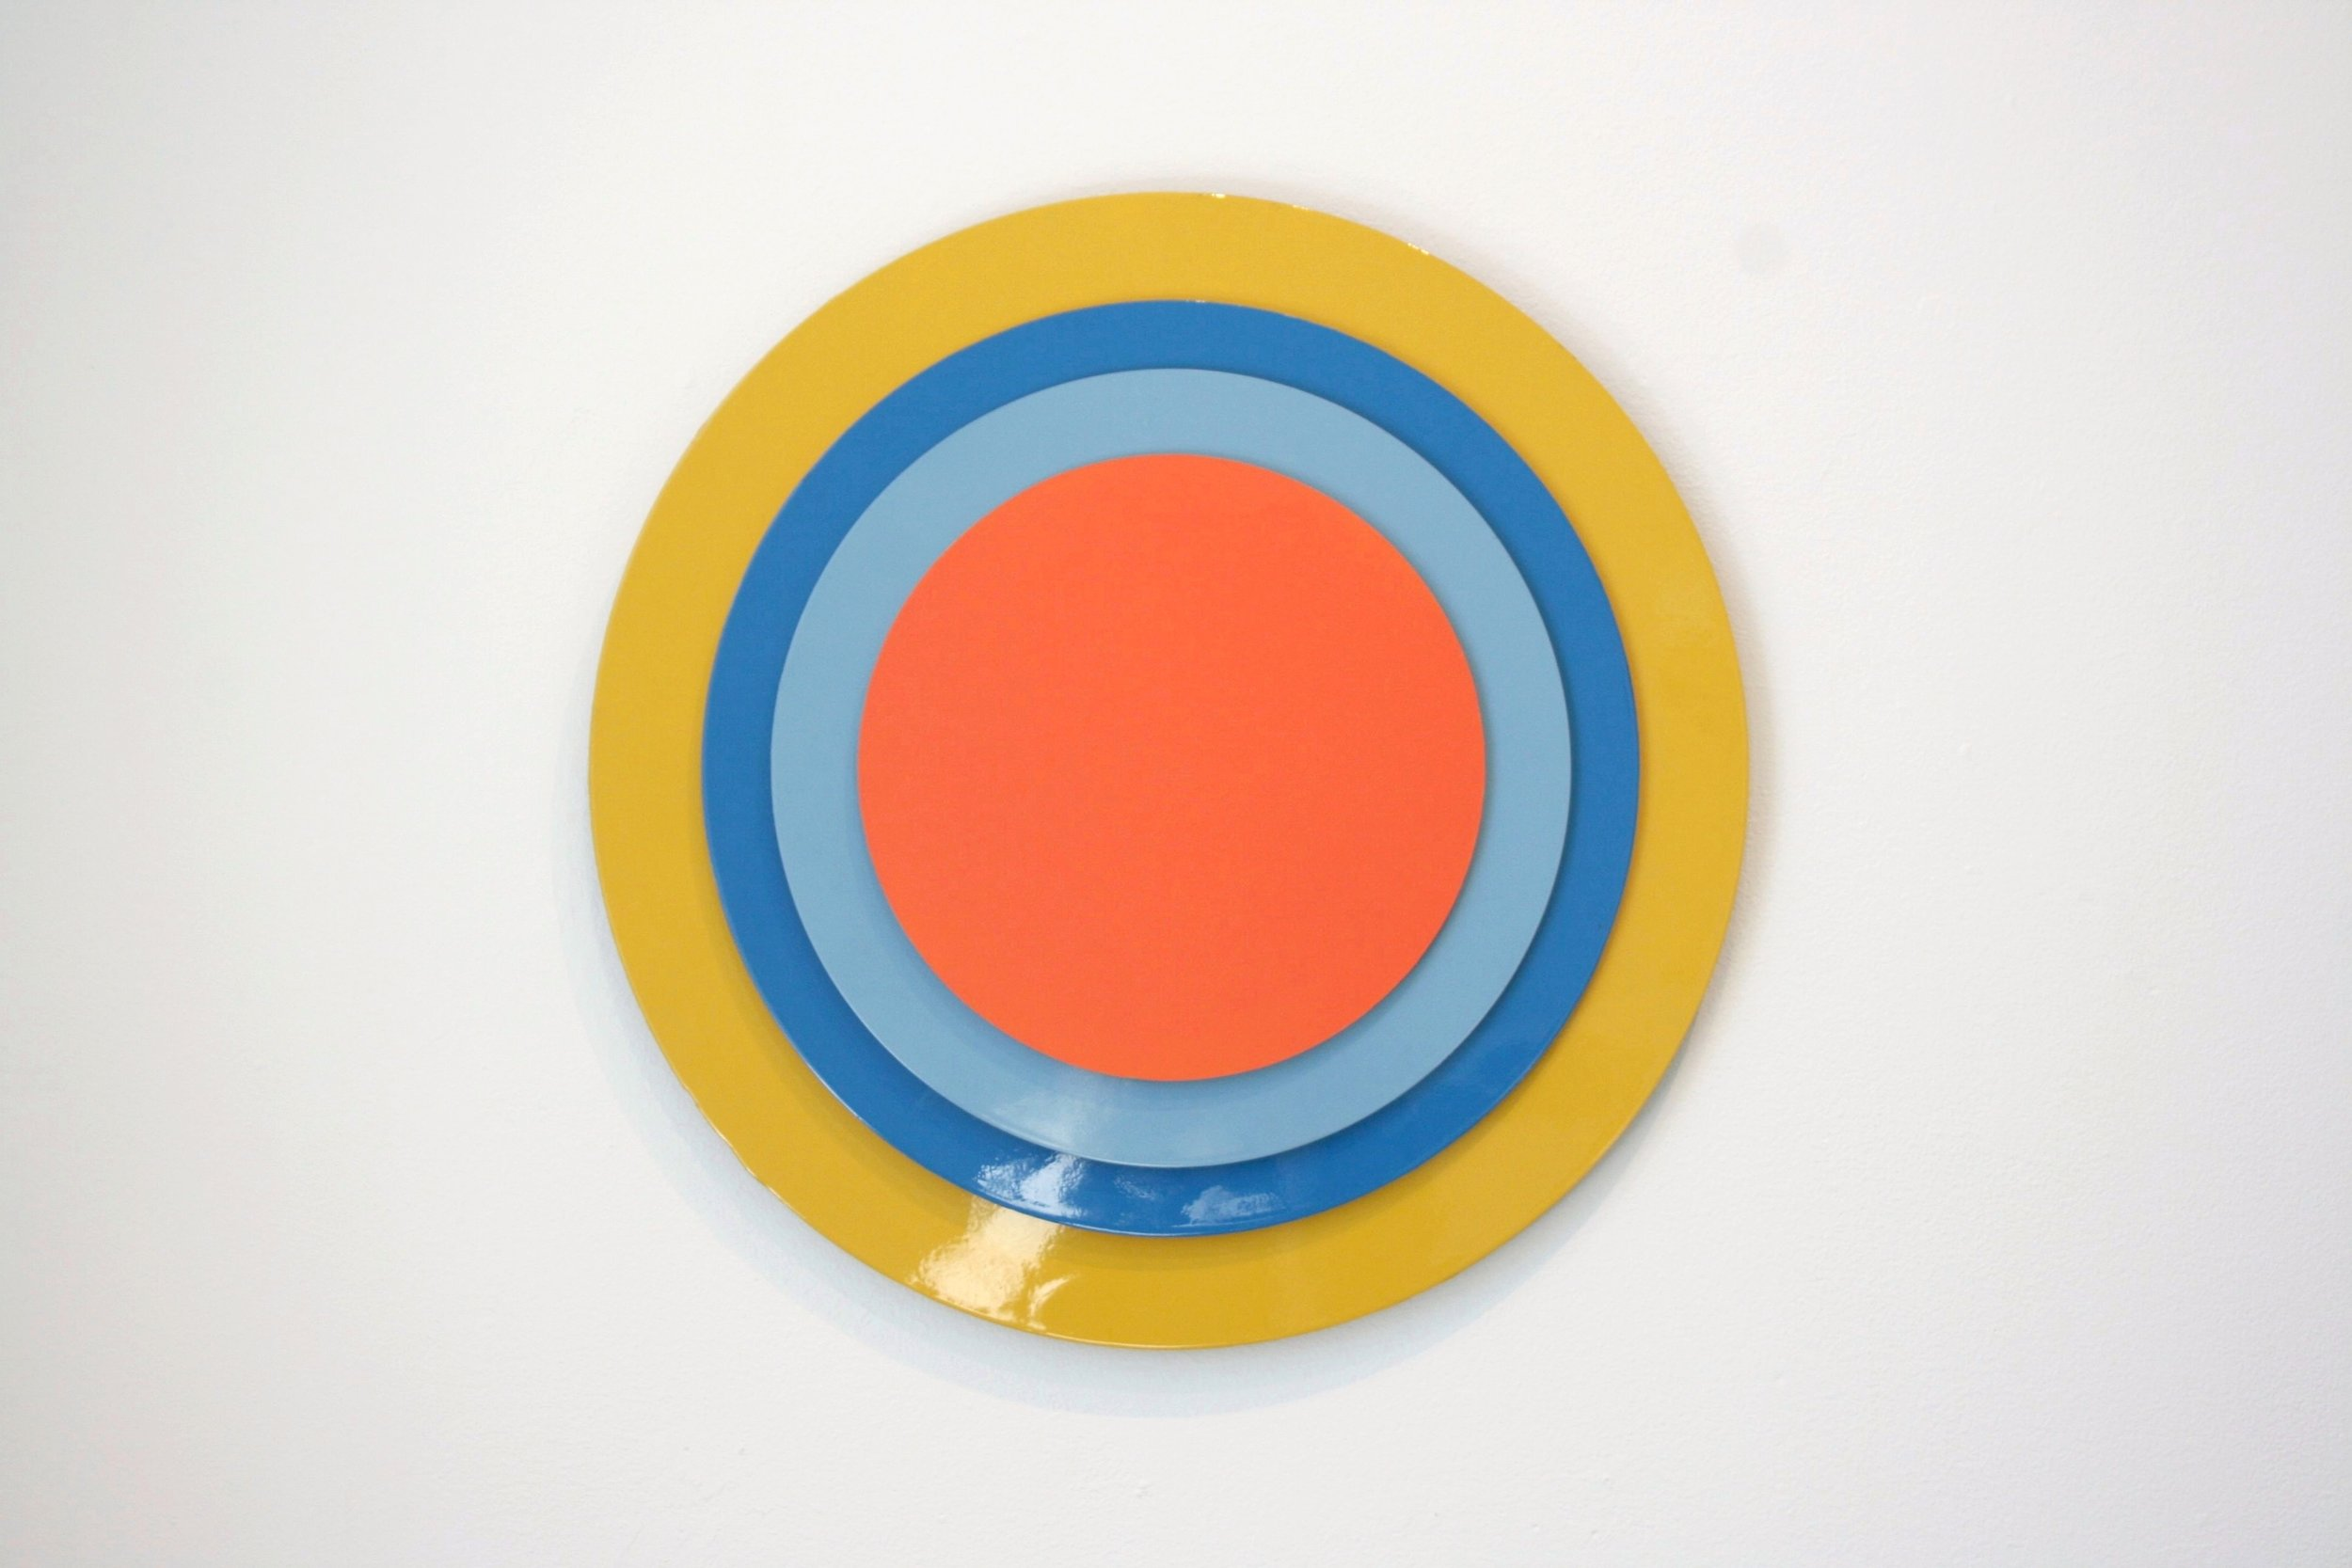 Surround,  2010 Lacquer on MDF, 50 cm in diameter  I See You , LNM, 2010